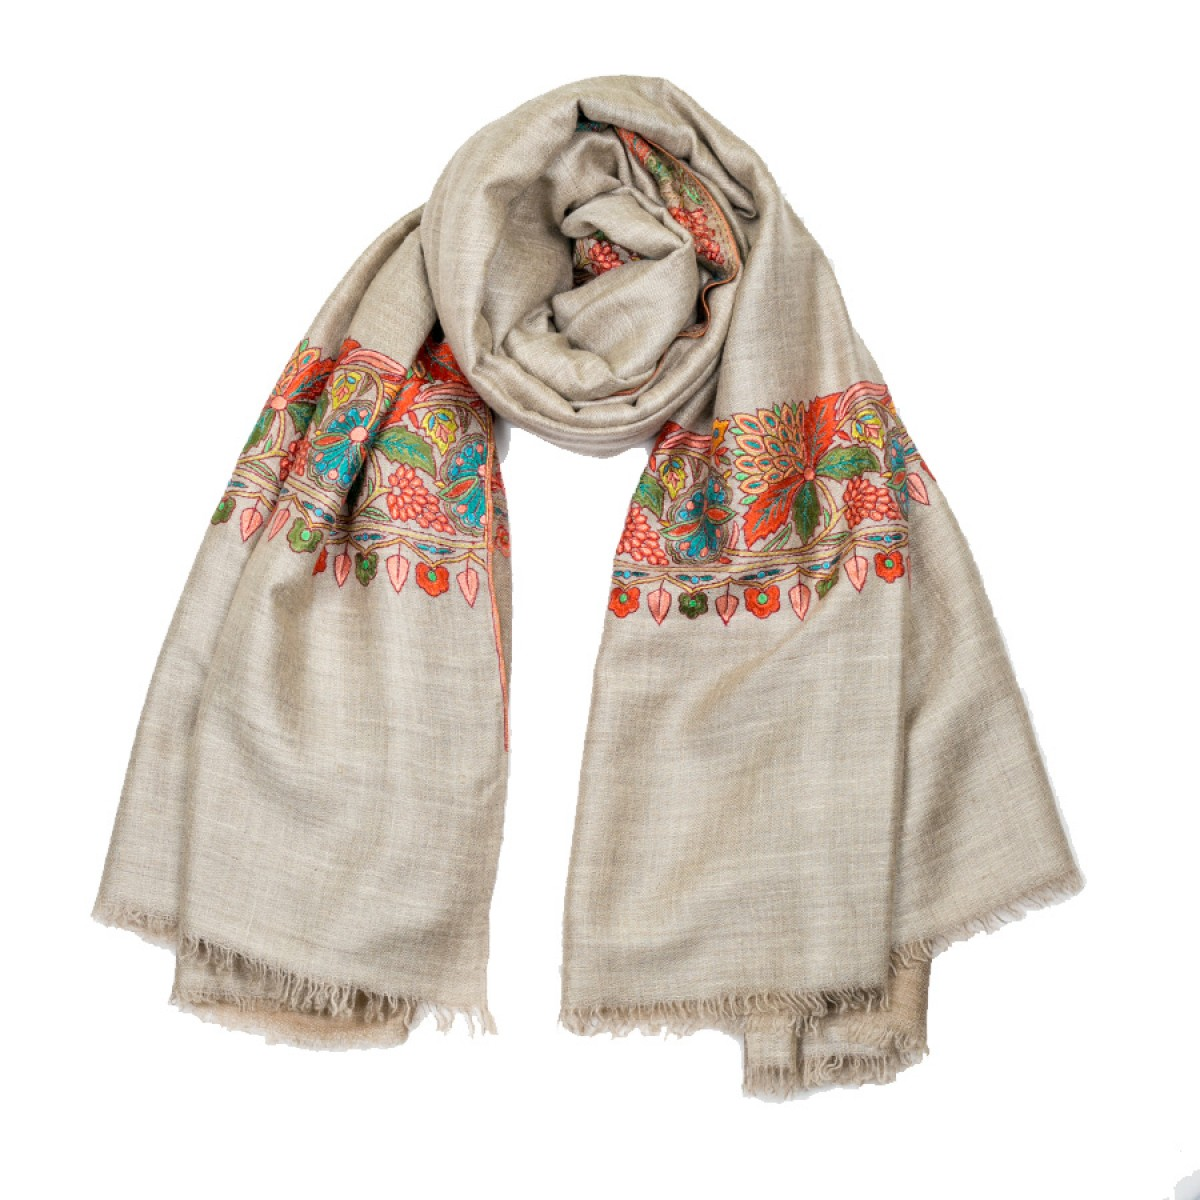 Embroidered Pashmina Shawl - Natural Color